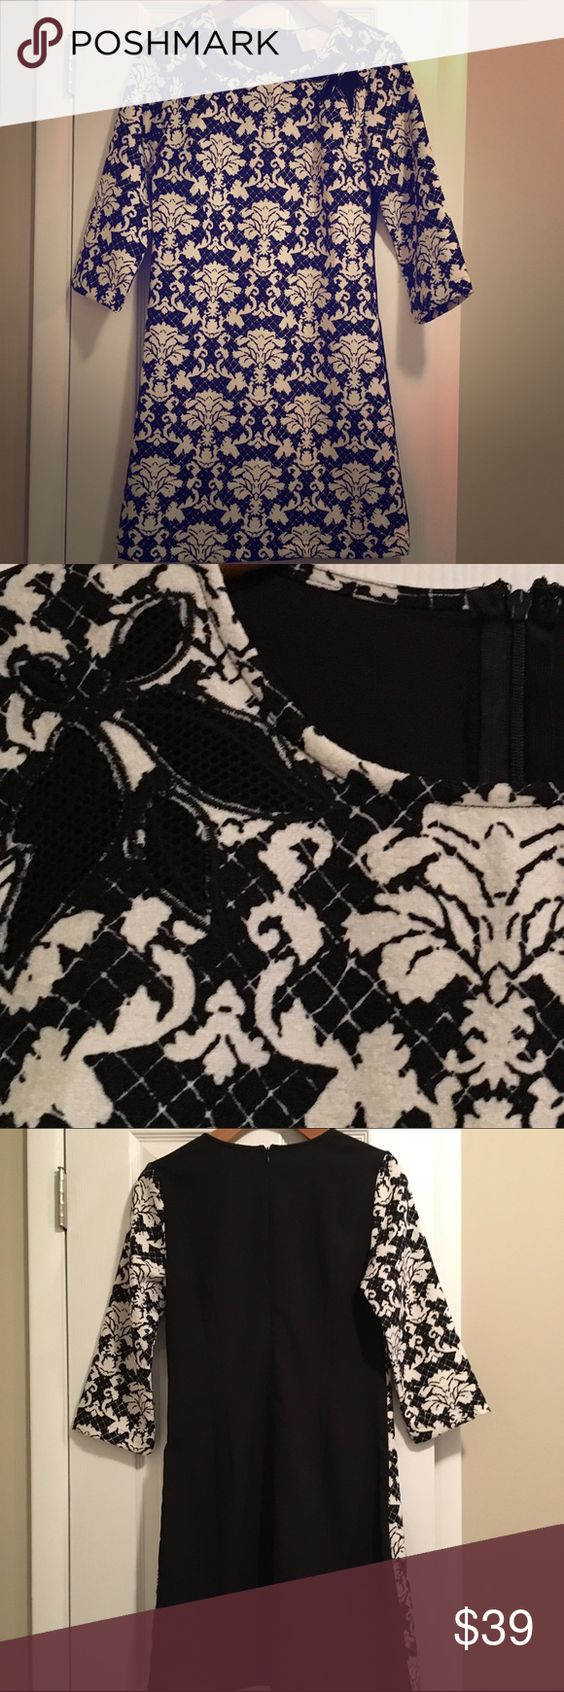 ⭐️SALE⭐️ Black/White Dress NWOT Black/White Dress is absolutely stunning! 3/4 length sleeves and it's the perfect length for any EVENT! Mesh flower cutout detailing around the neck. Shell: 100%Cotton, Contrast: 96%Polyester 4%Spandex; Care Instructions - Hand wash, lay flat to dry Dresses Midi